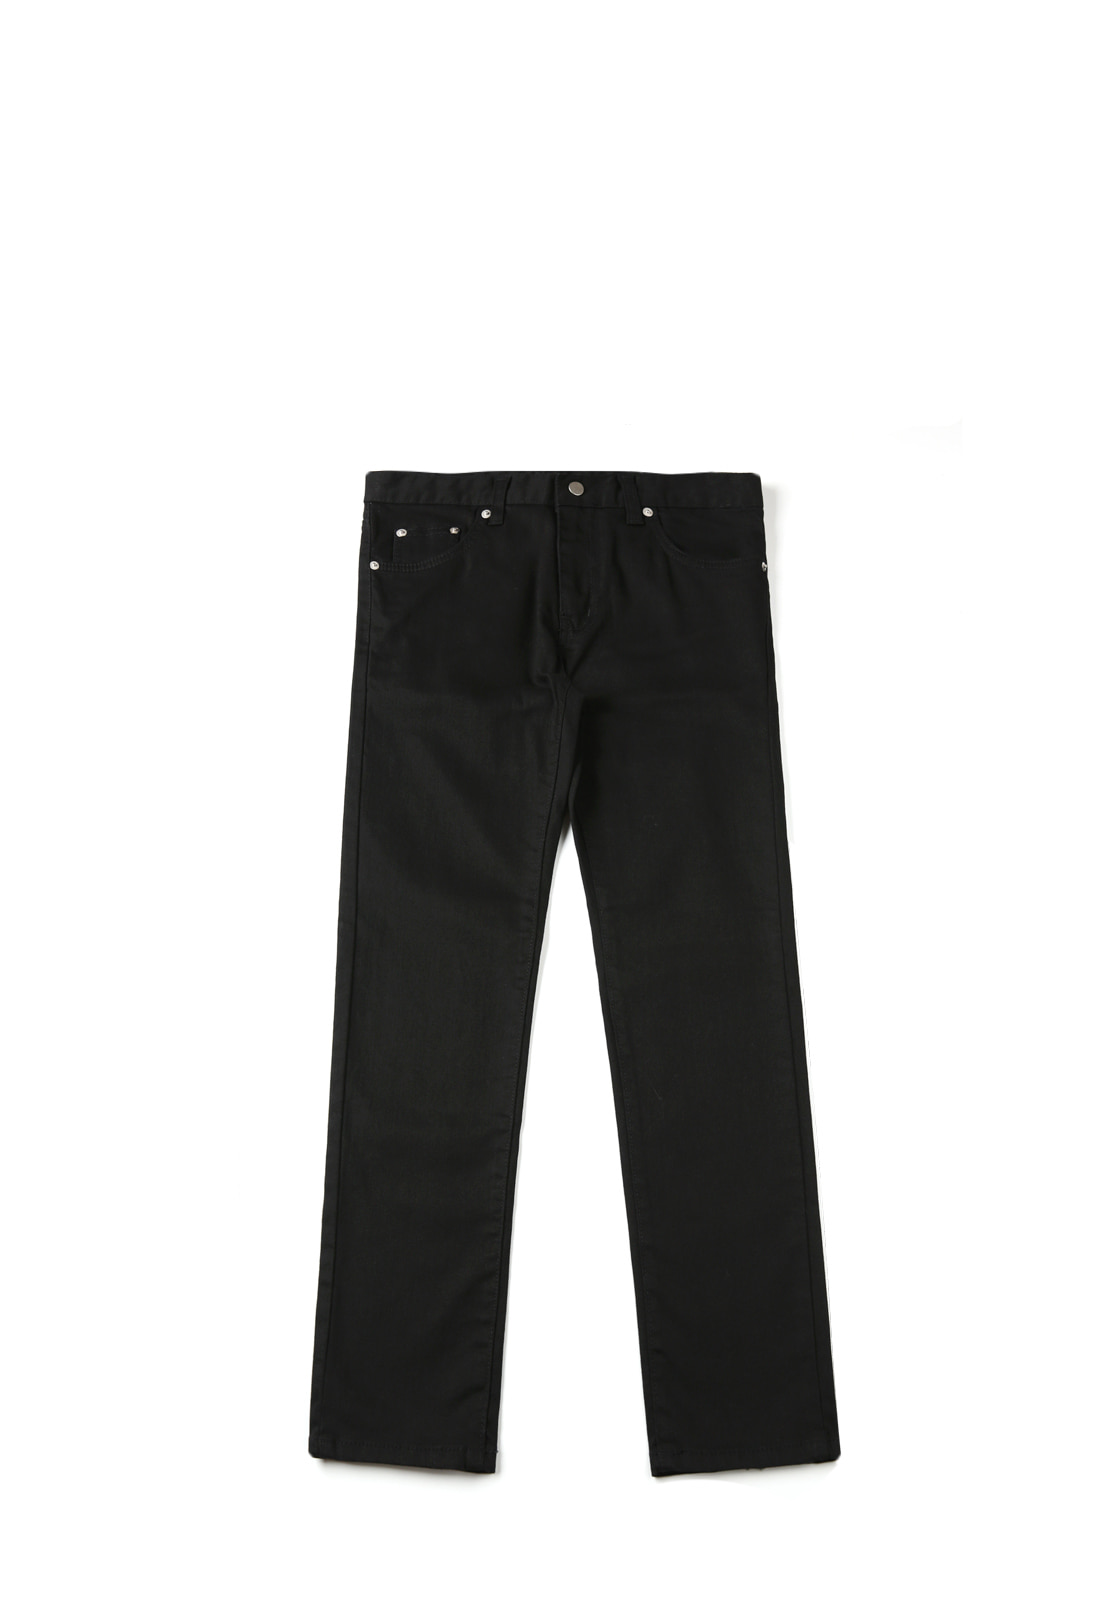 V236 SIMPLE SLIM BLACK JEANS  BLACK